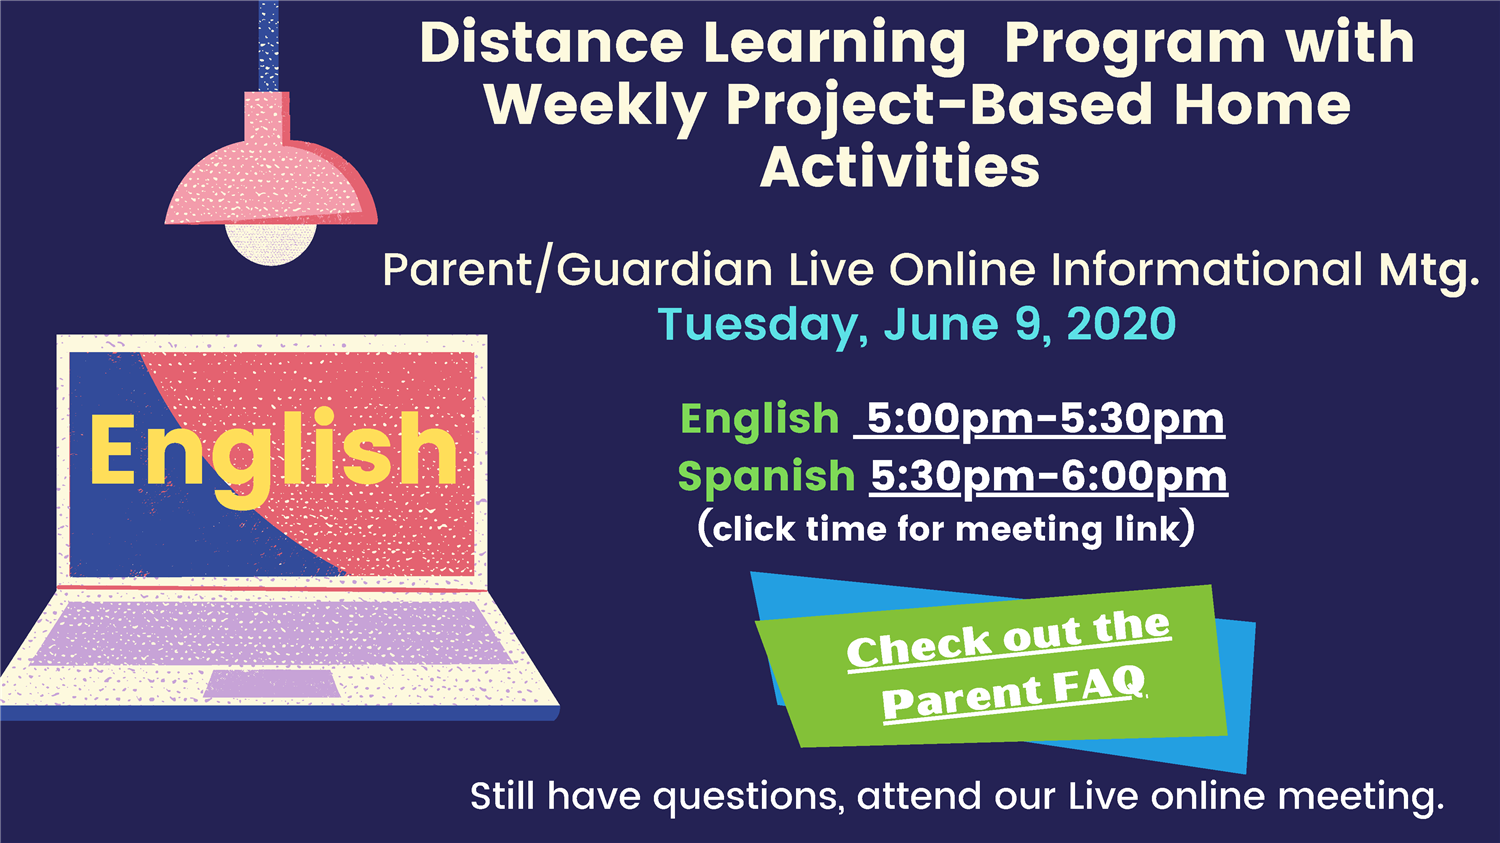 Parent Live Online Meeting for Distance Learning Program